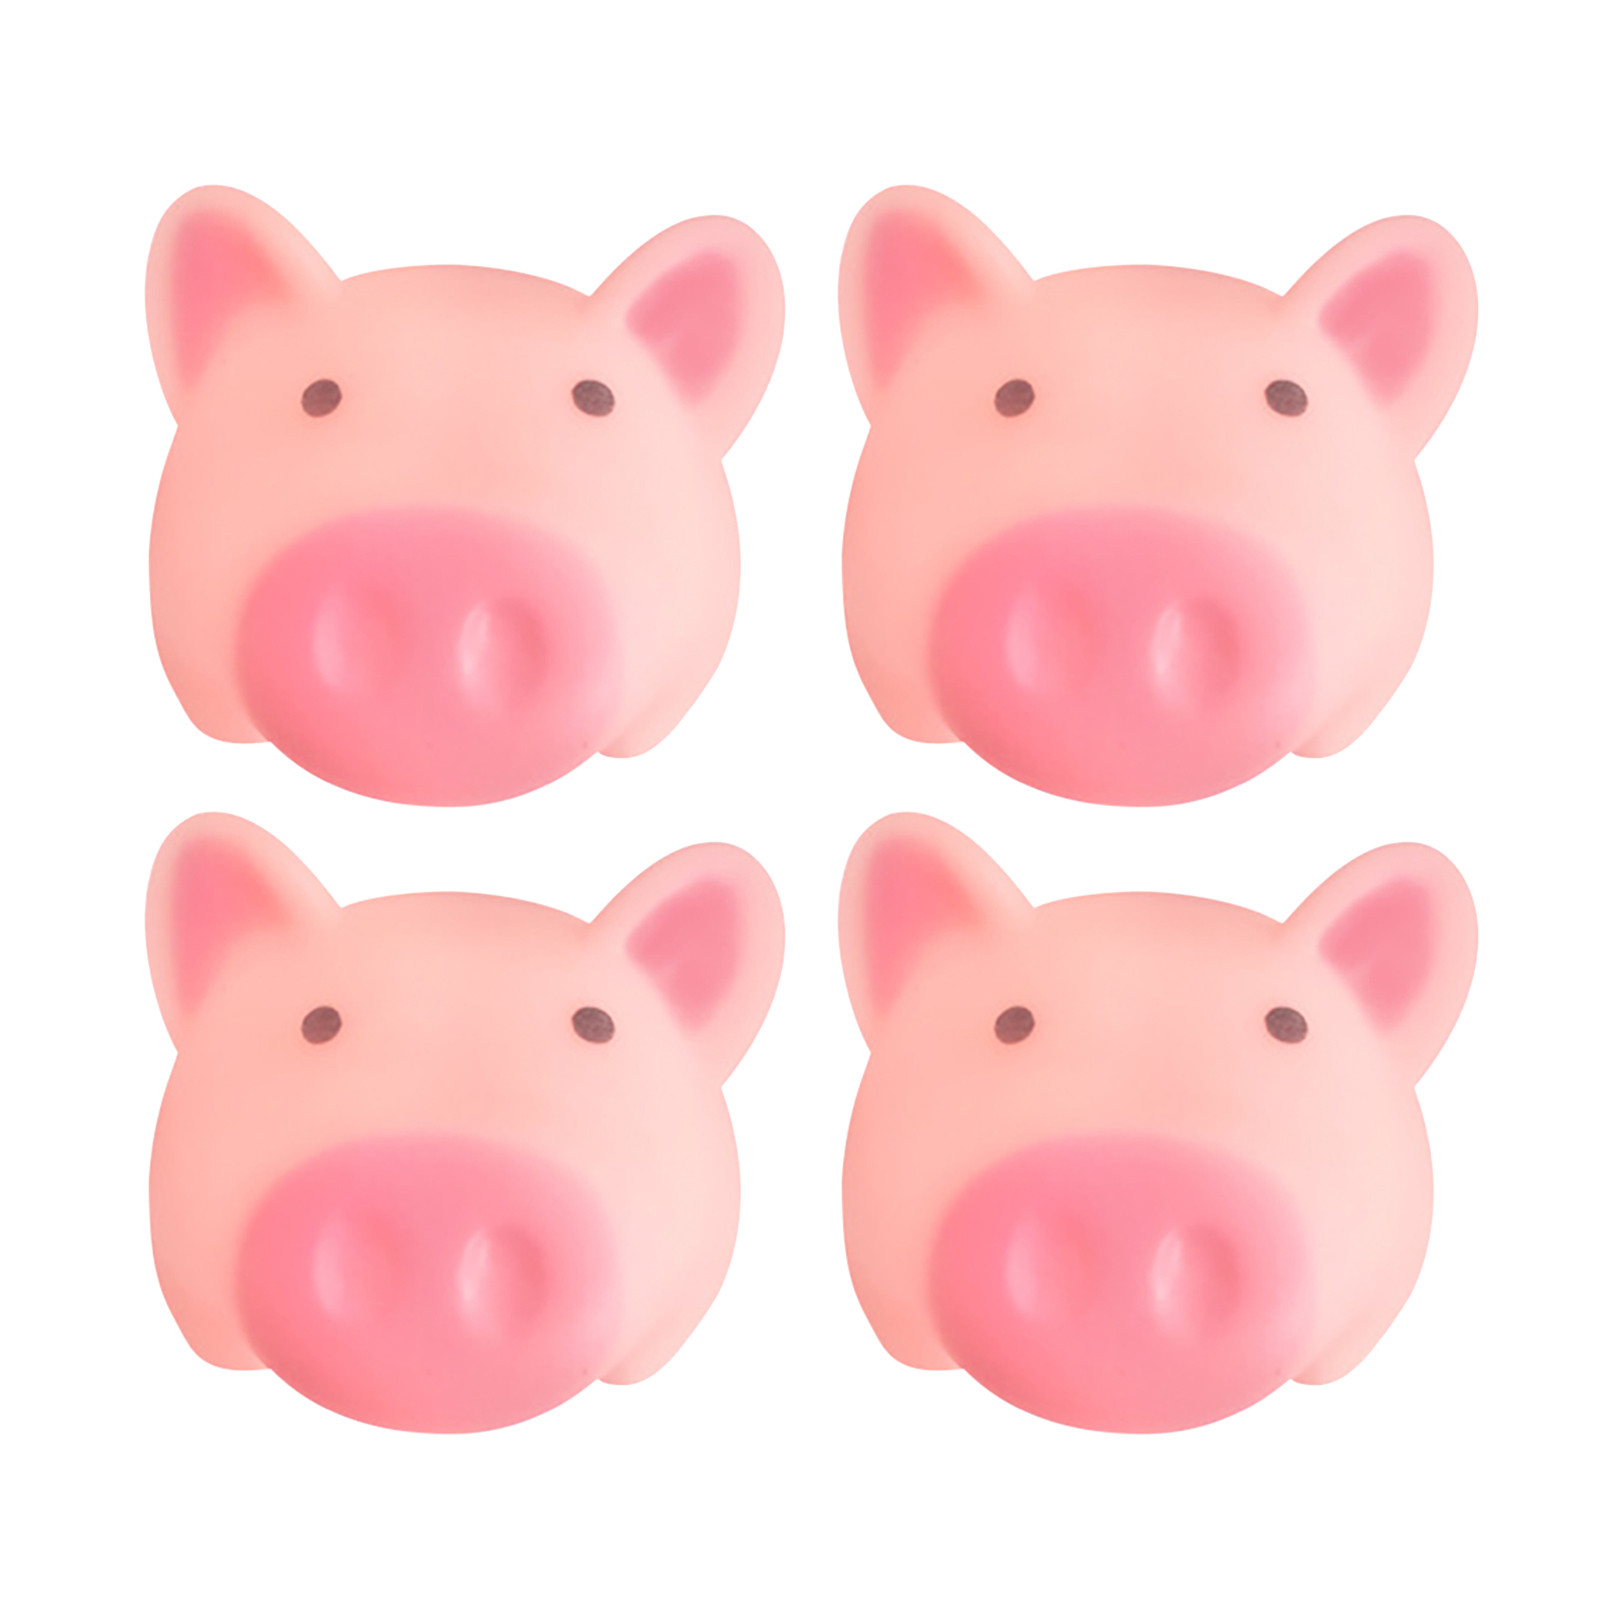 Snailhouse New Cartoon Soft Cute Pink Pig Toy Pig Cute Pink Toy To Vent Children Bath Pig Pinching Joys Stress Vent Toy#4 img4